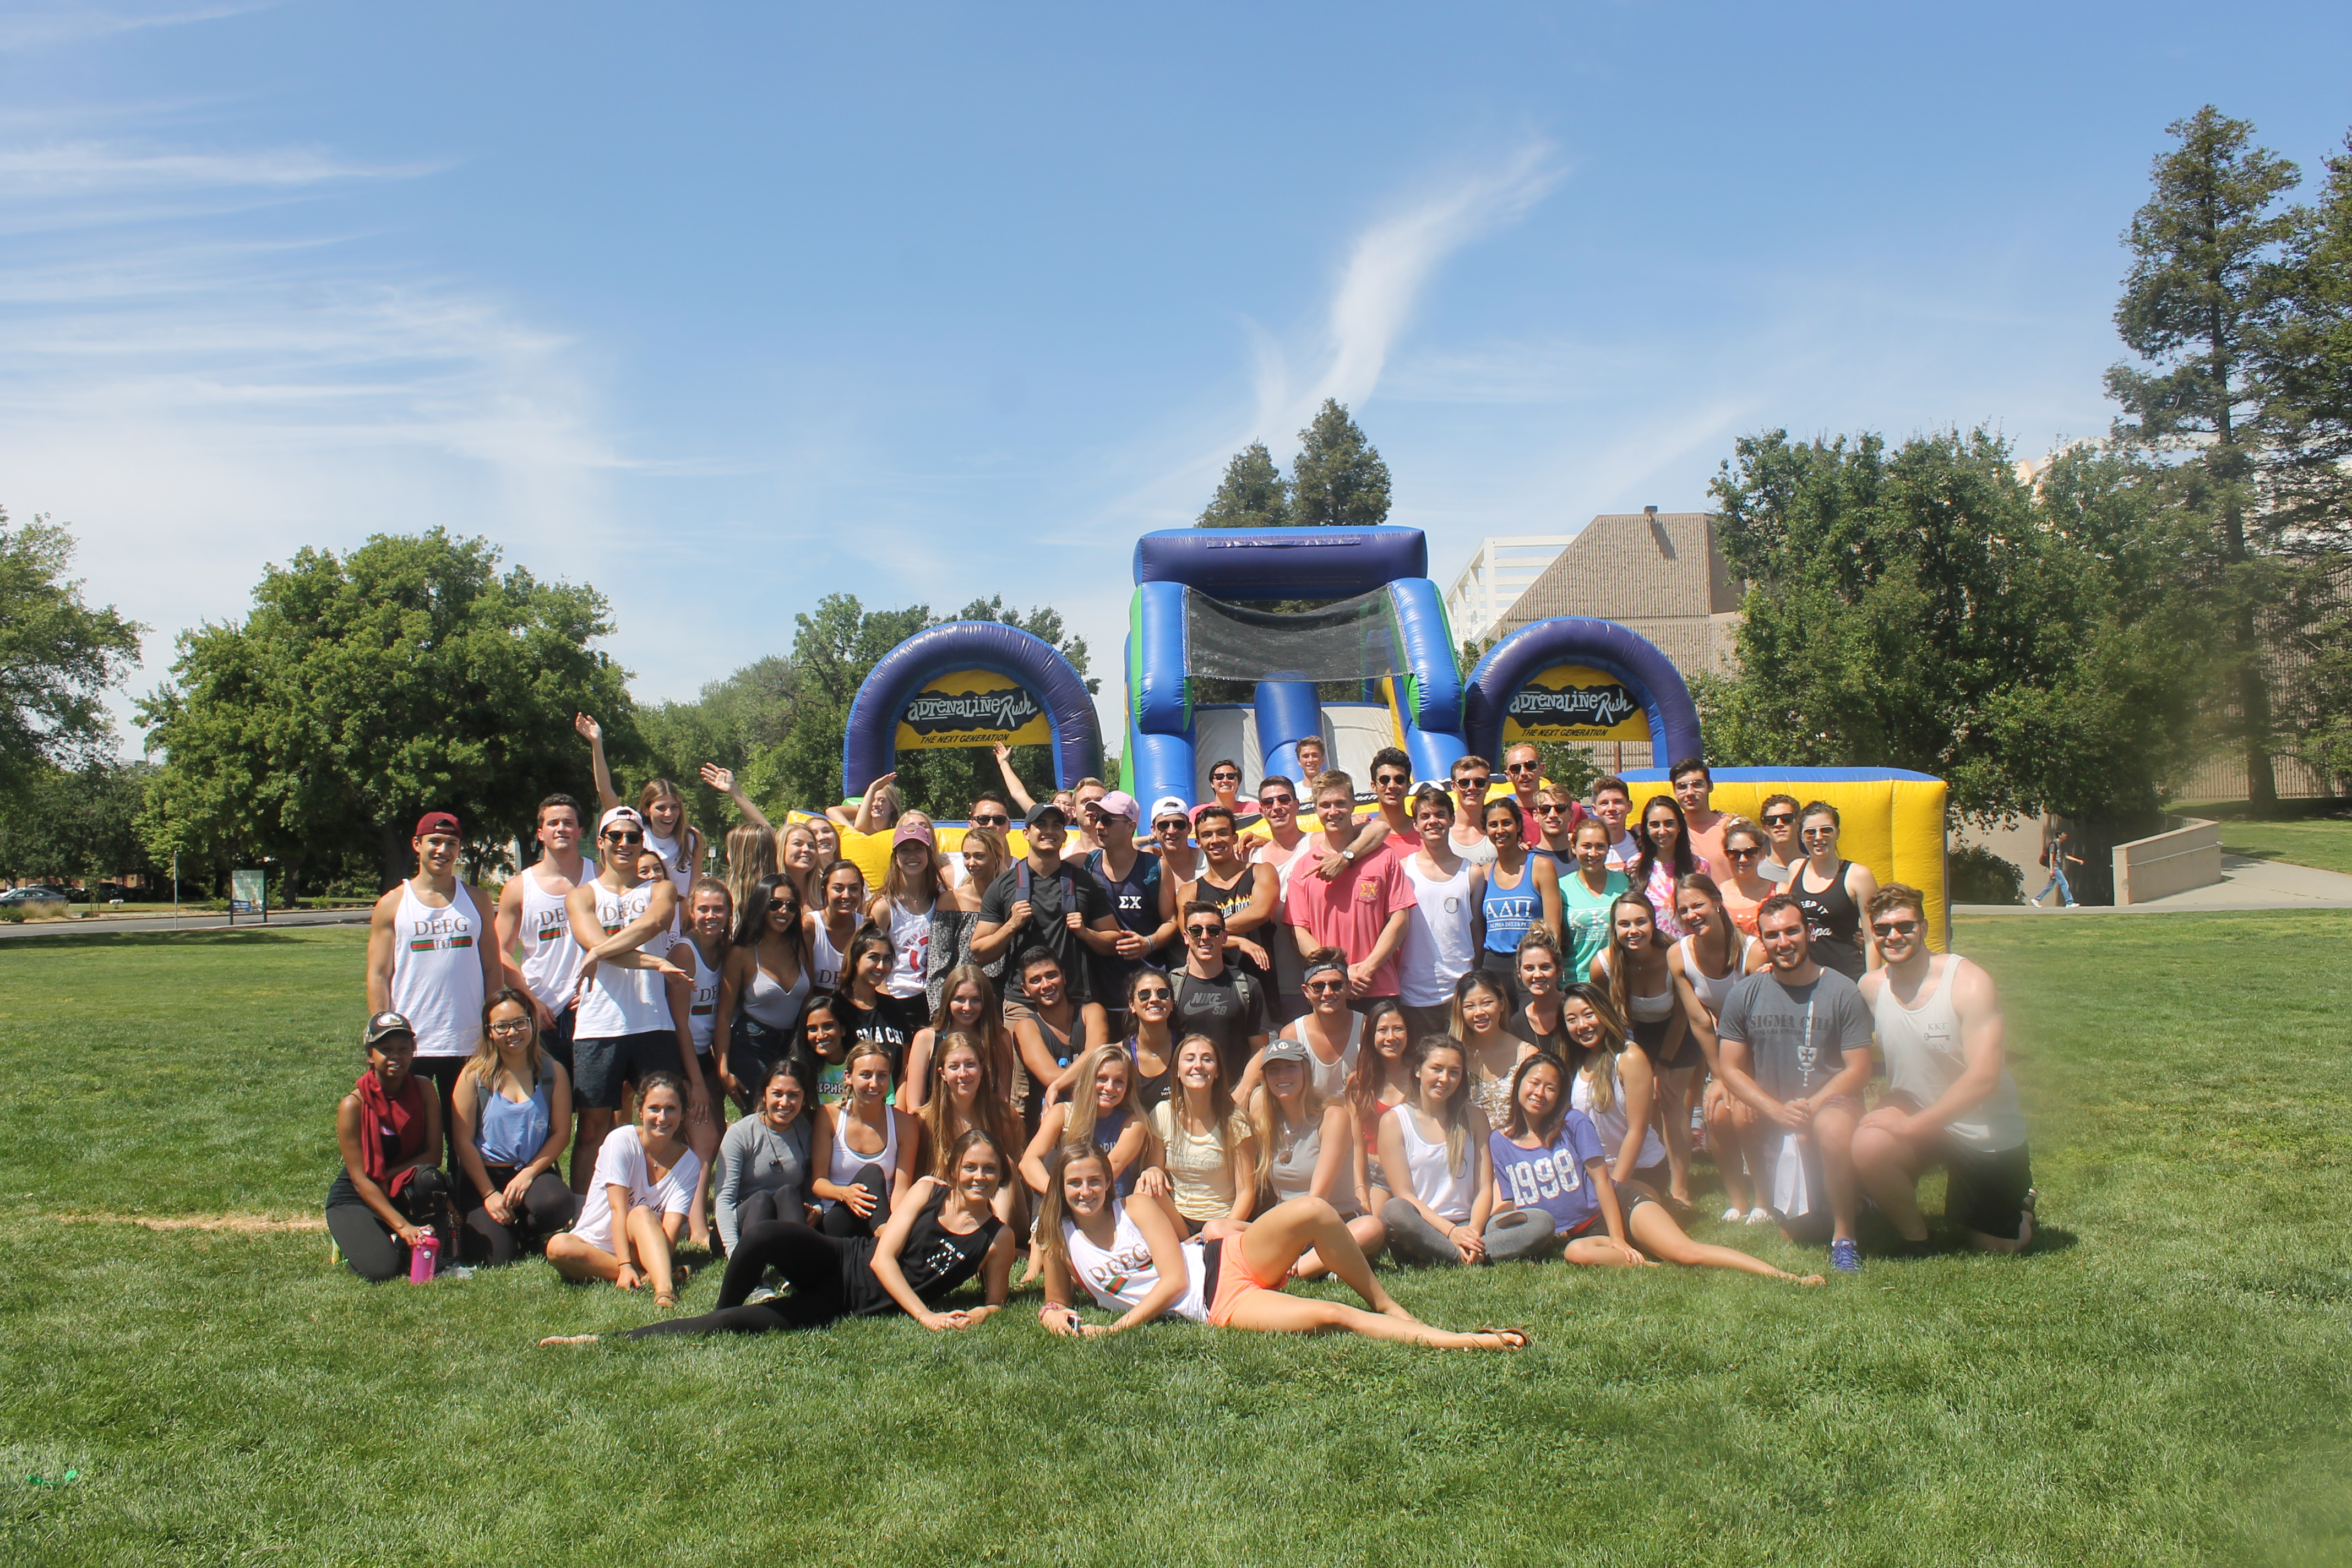 UC Davis fraternity raises $50,000 for cancer research